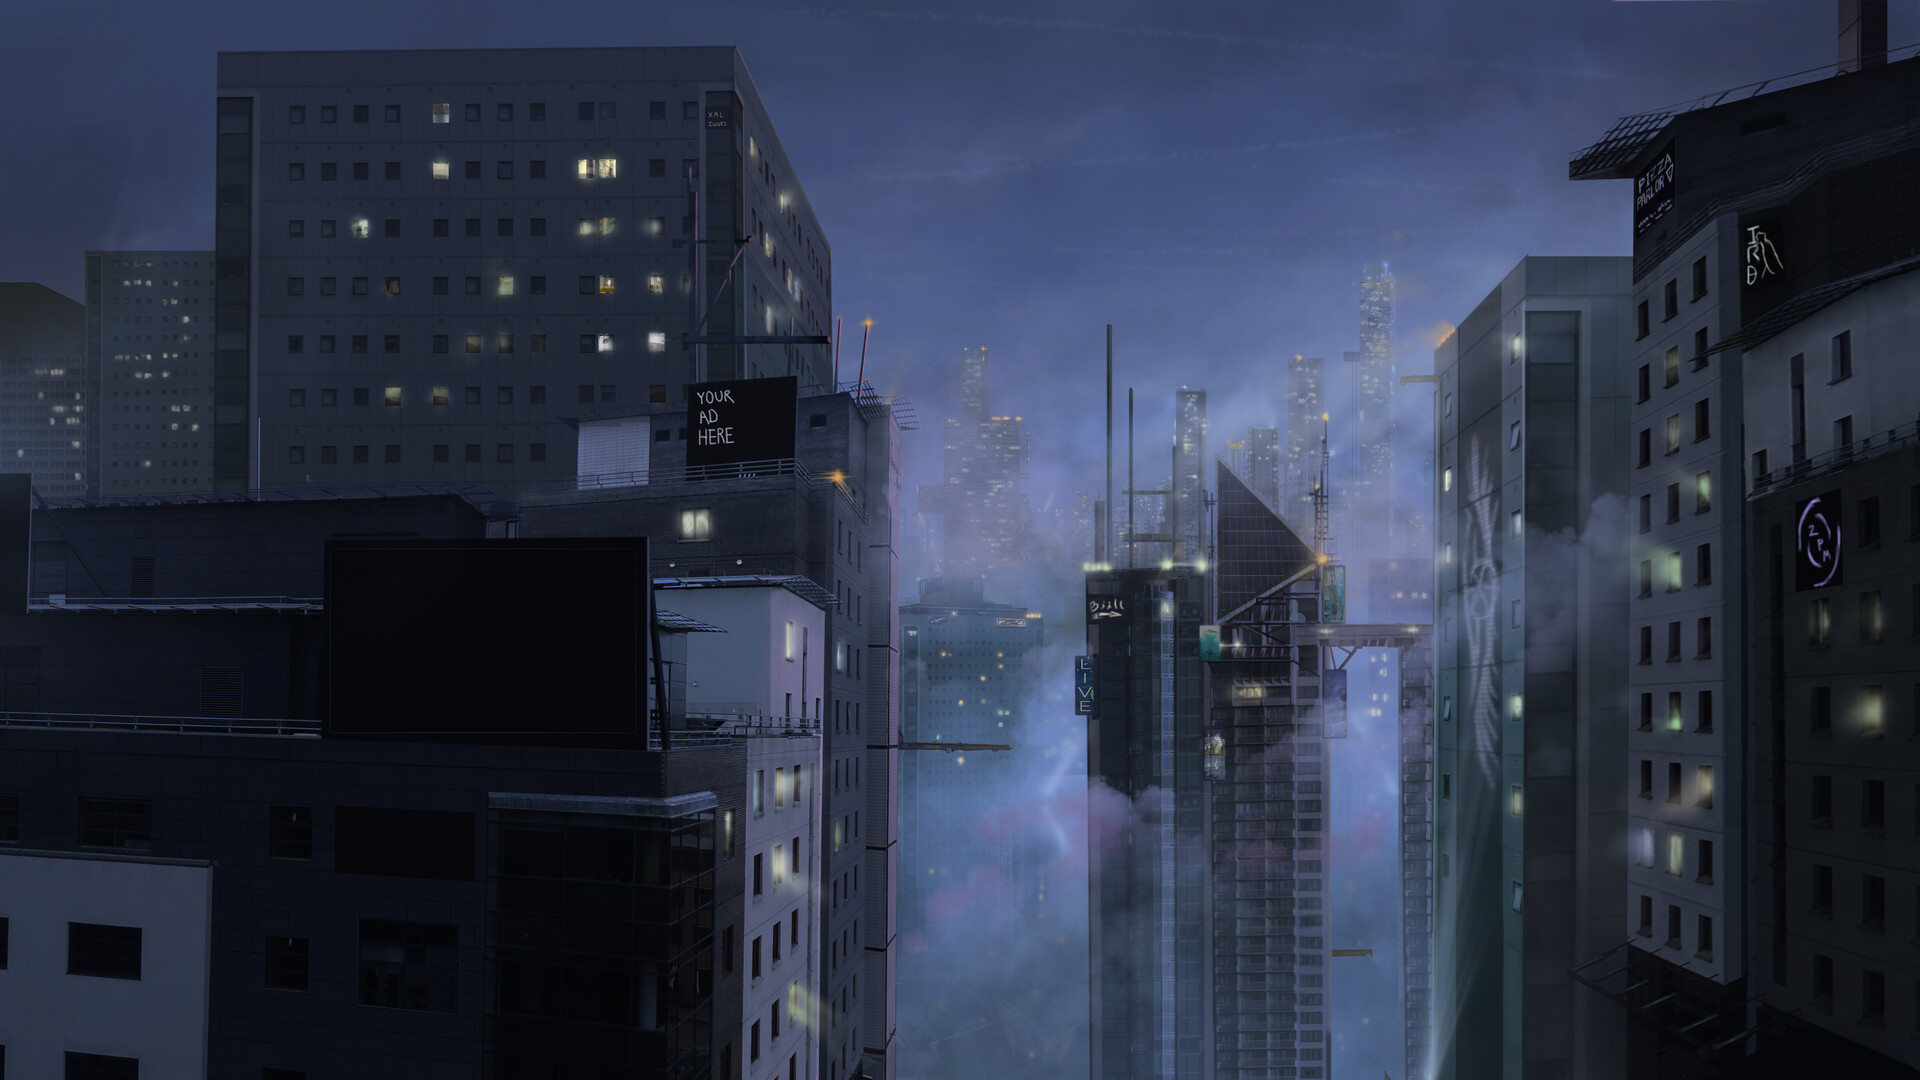 Just the night version of the painting - the billboards were placeholders here, since the director created animated billboards for the final comp.